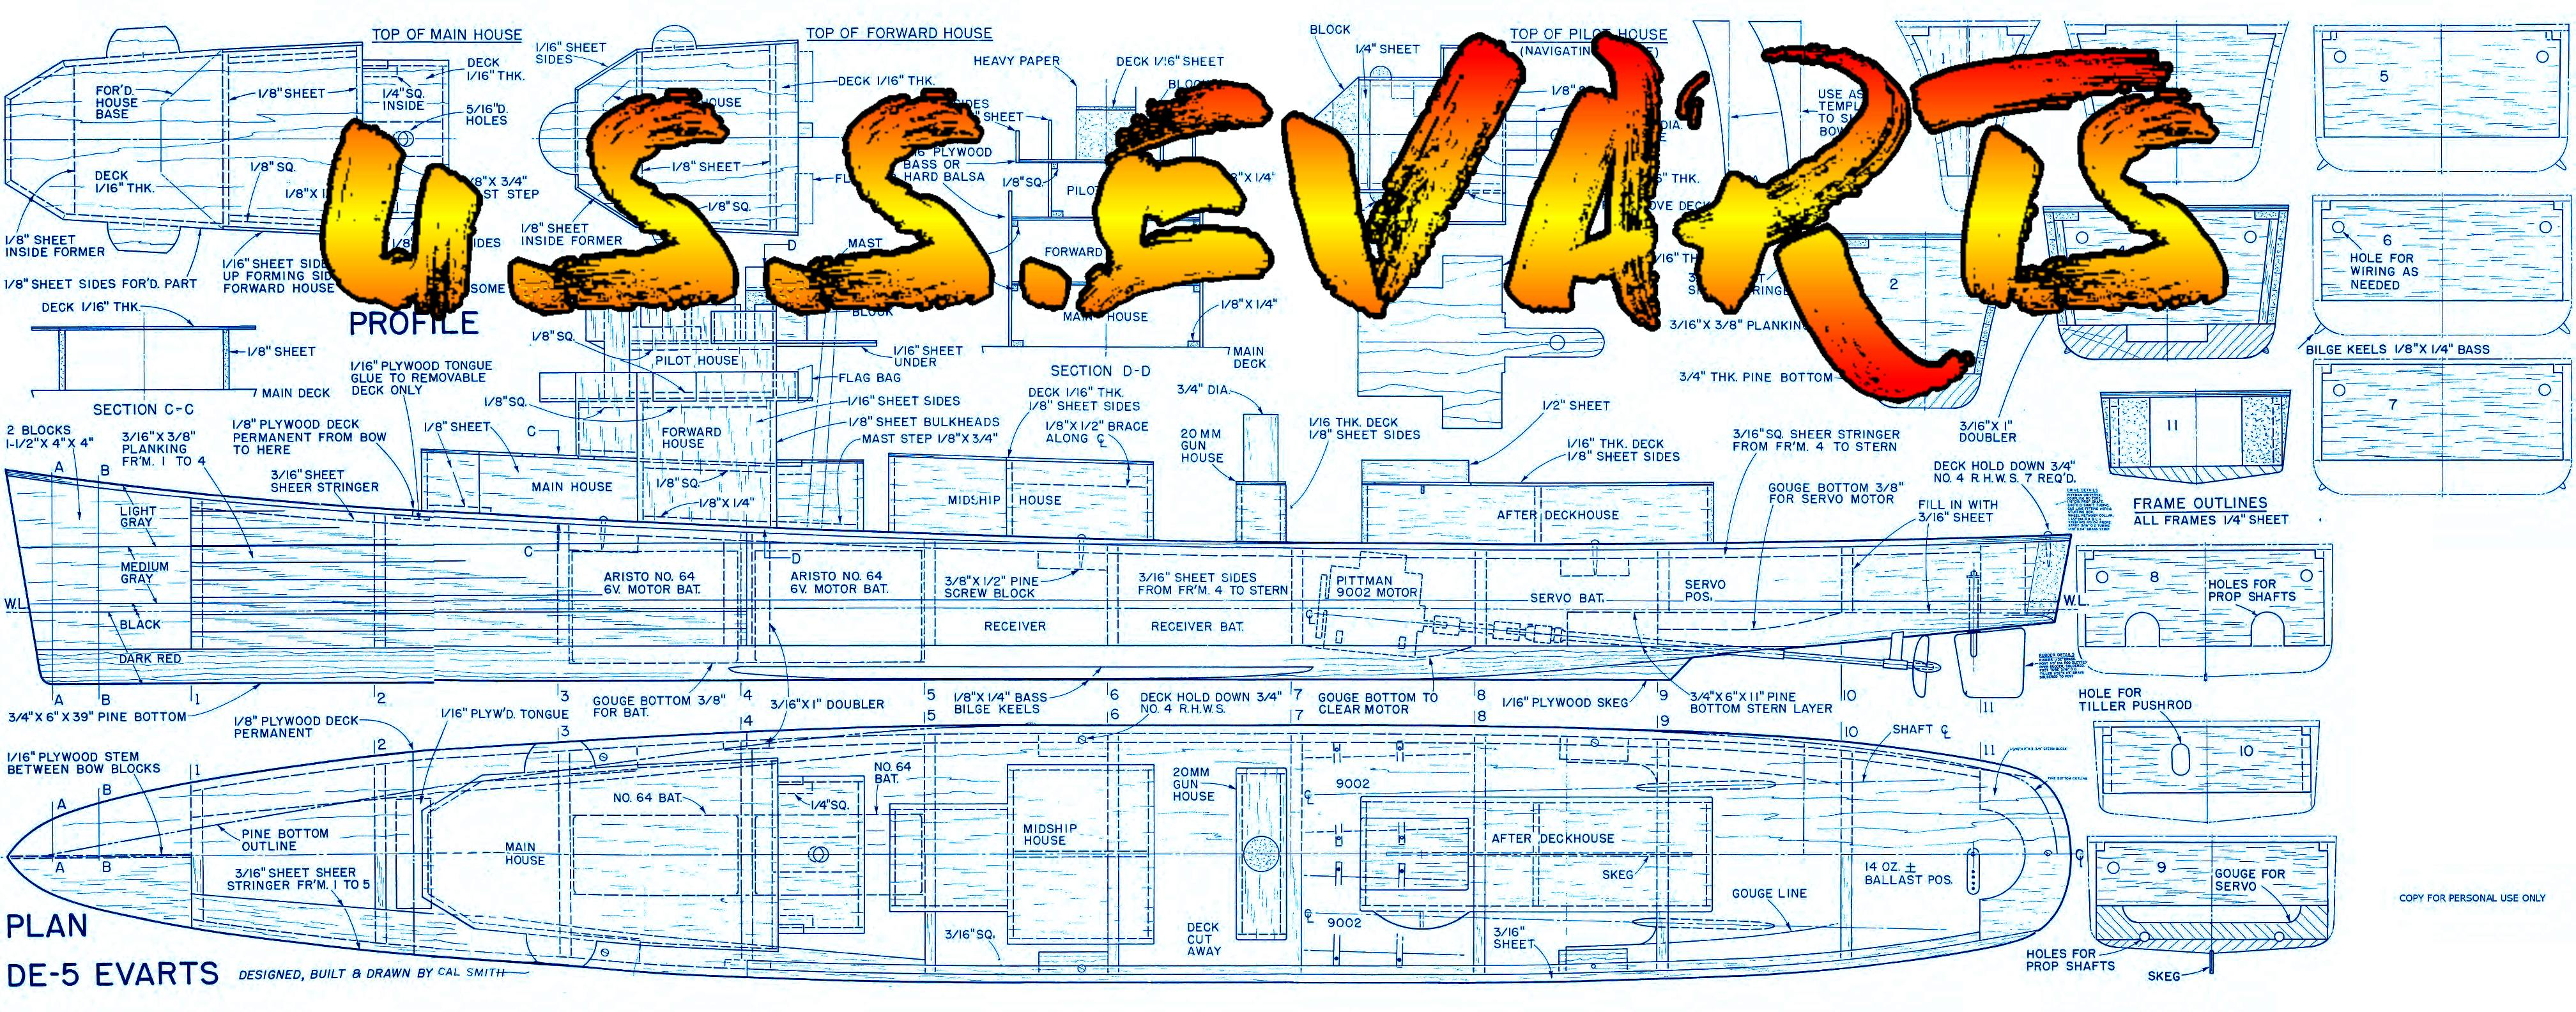 Full Size Printed Plan to build a Scale U.S.S. Evarts  Destroyer Escort Suitable for Radio Control